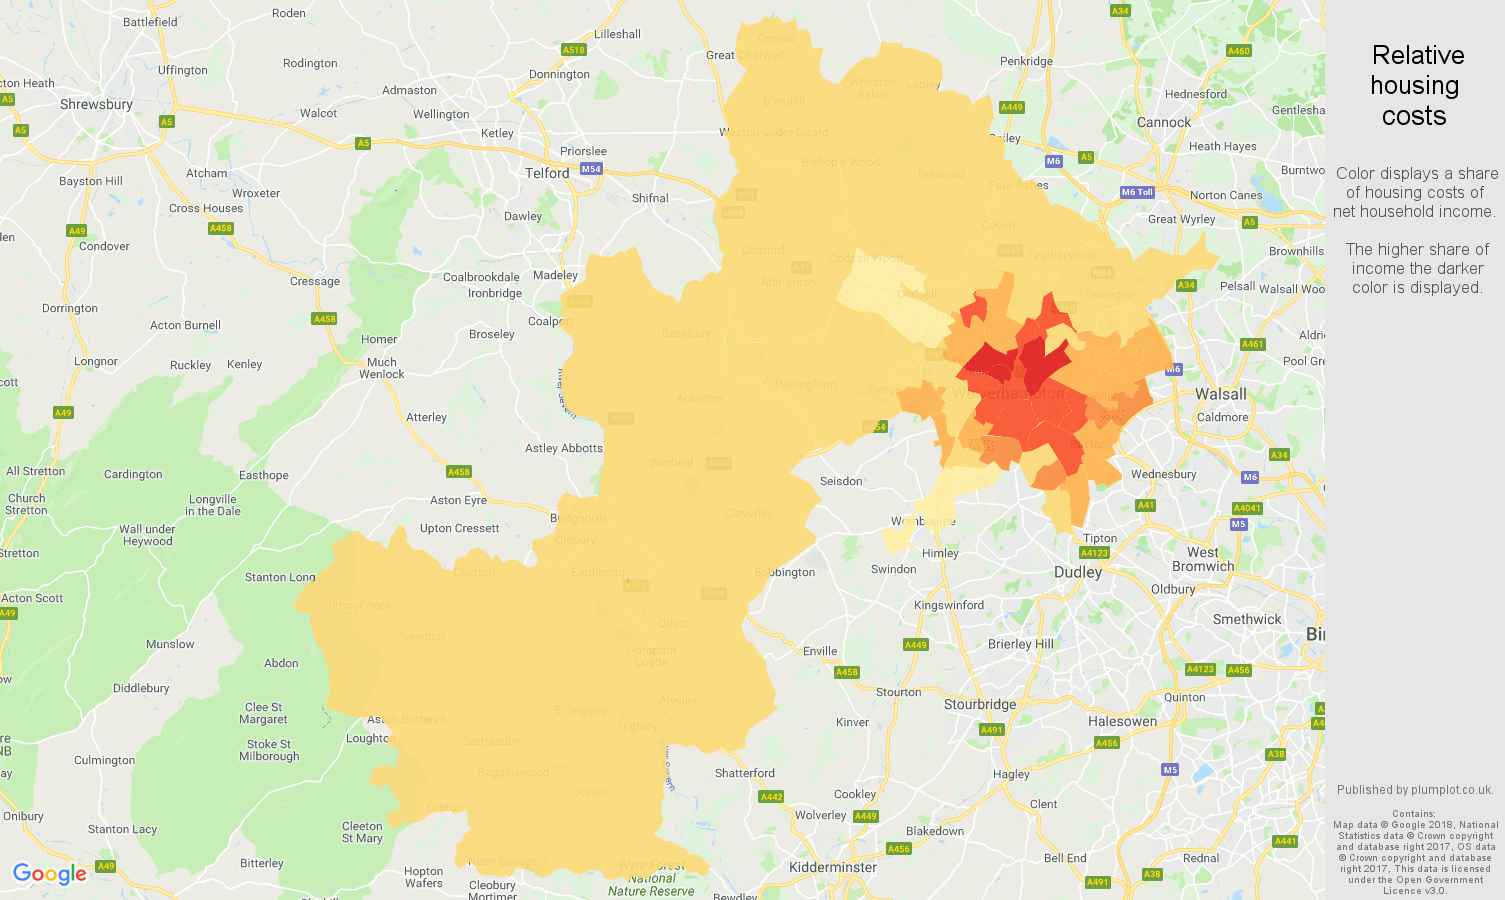 Wolverhampton relative housing costs map